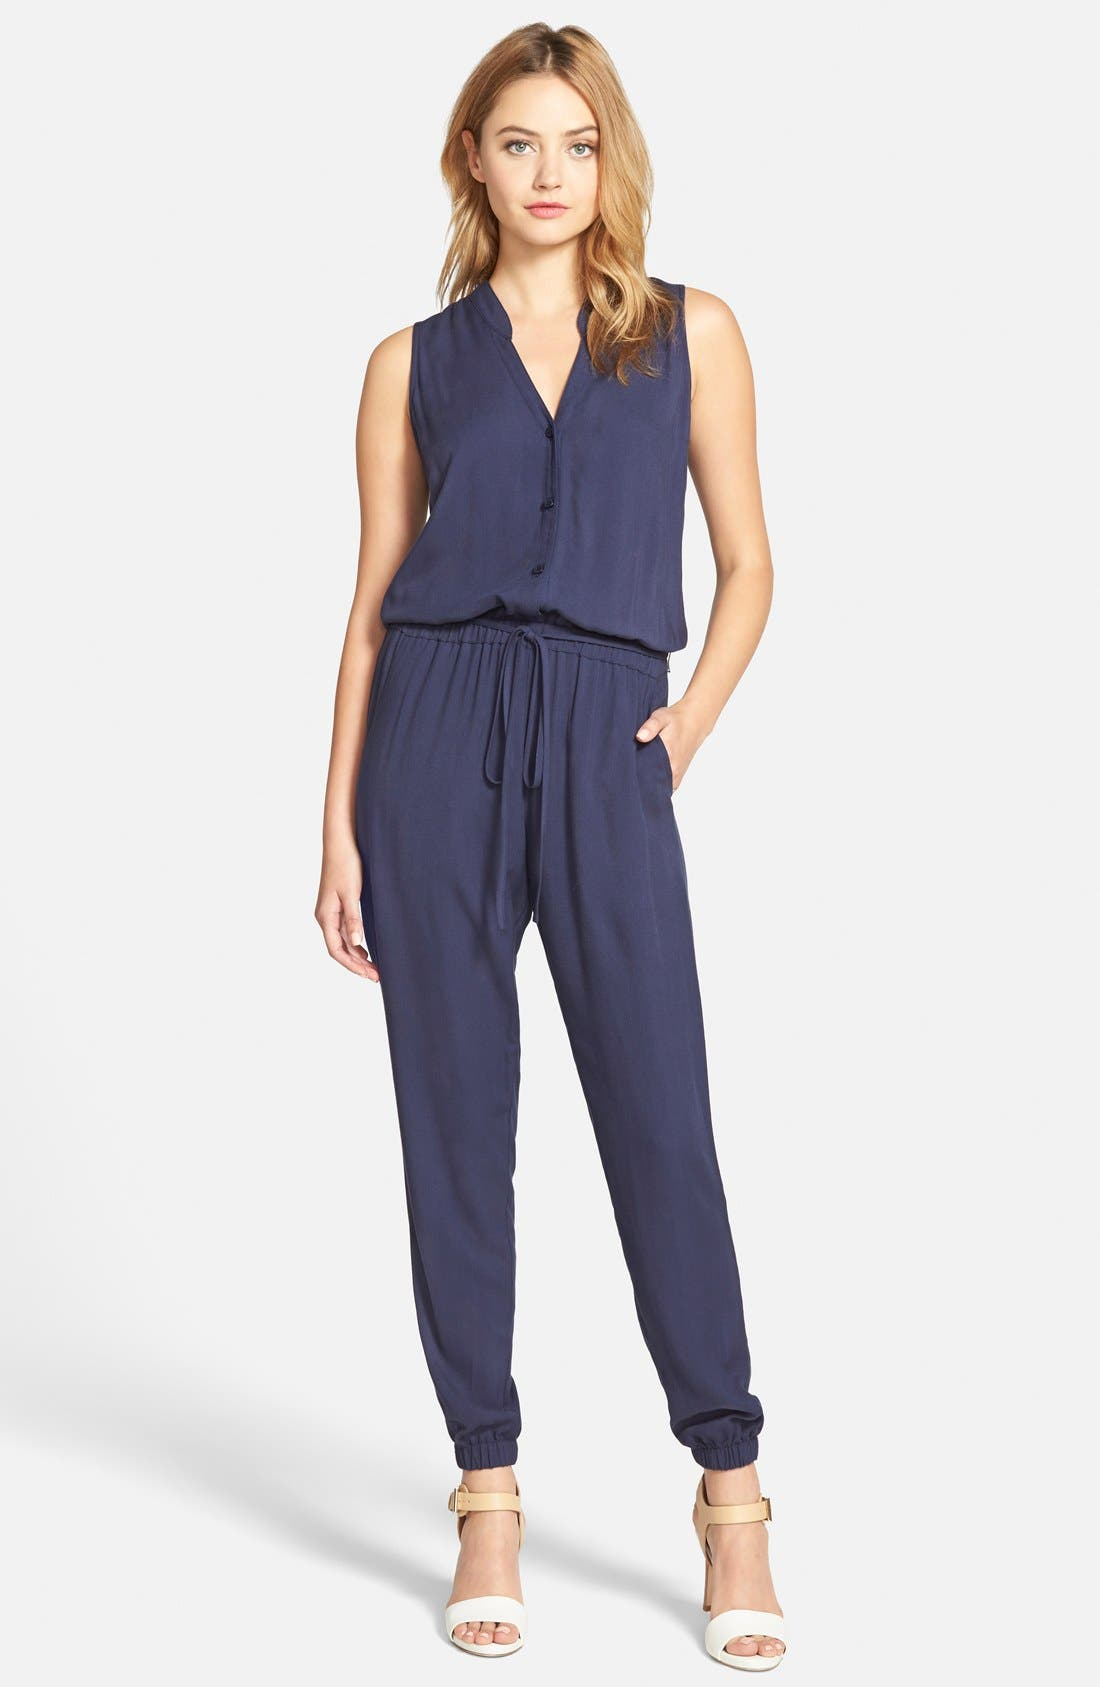 Alternate Image 1 Selected - cupcakes and cashmere 'Roxbury' Jumpsuit (Nordstrom Exclusive)